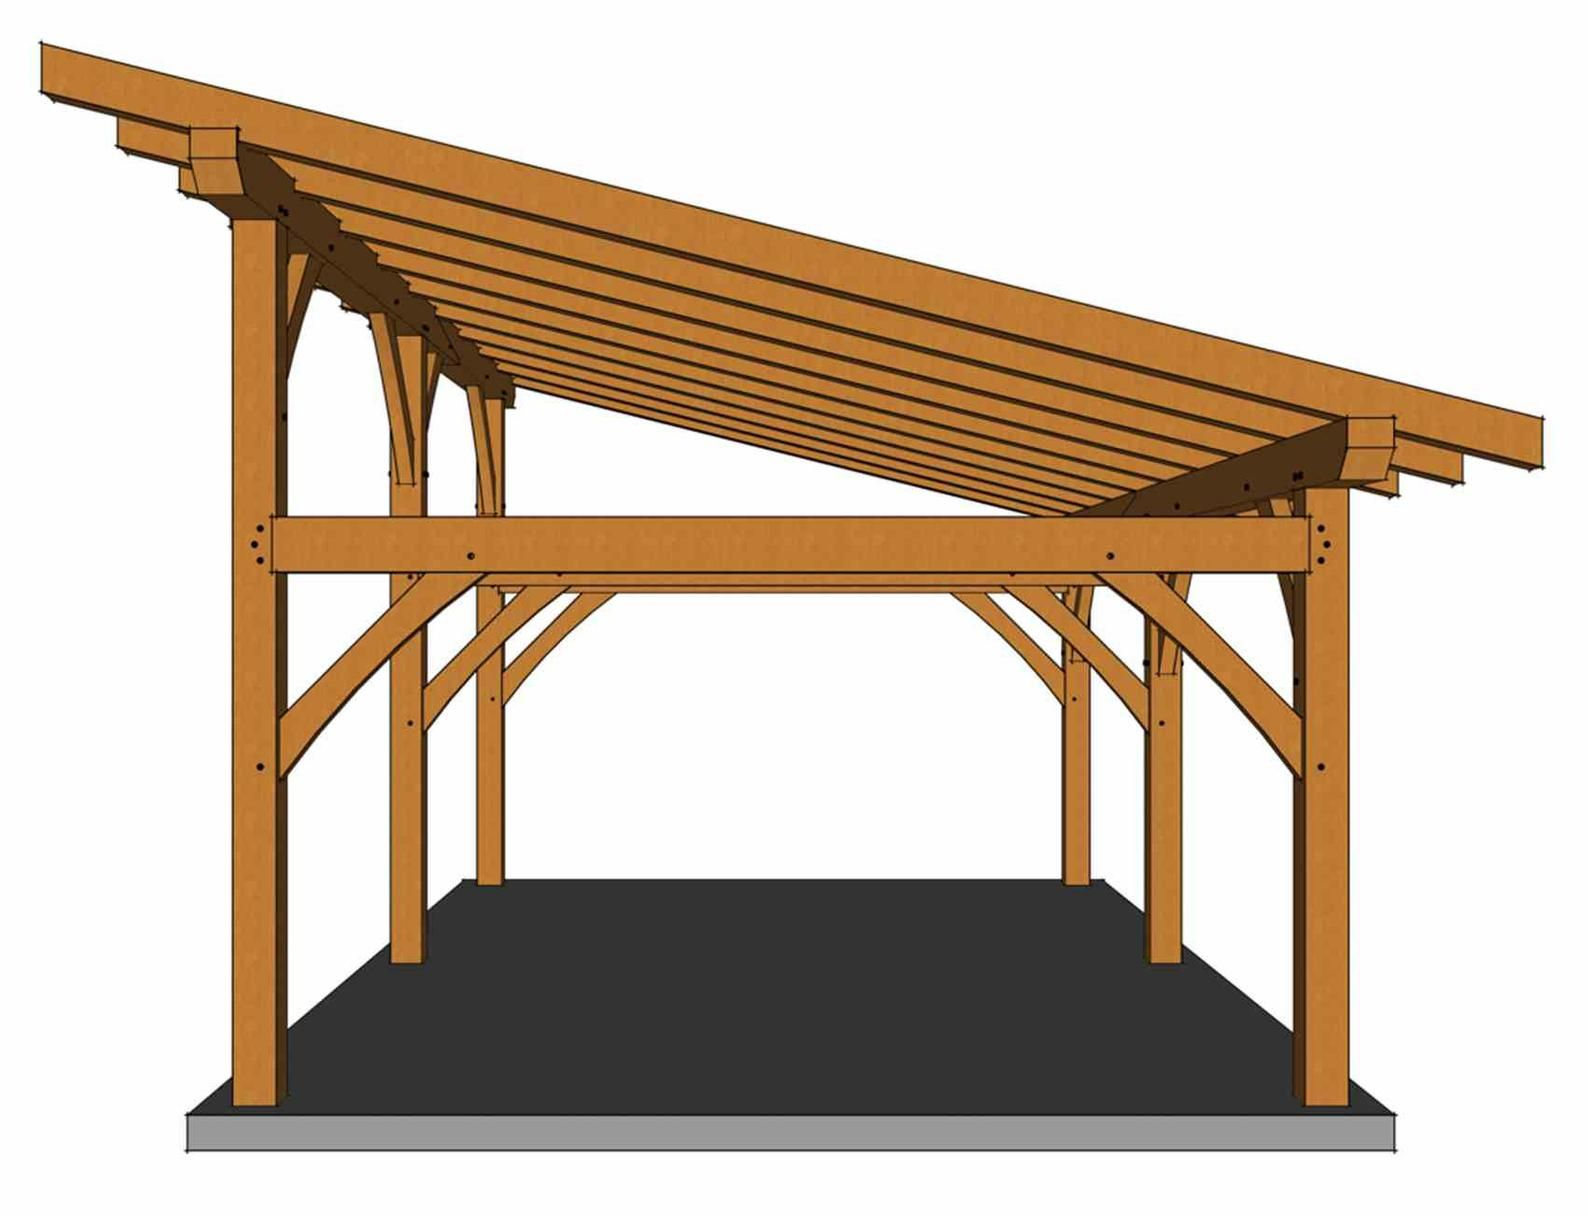 1624 Shed Roof Plan Etsy In 2020 Shed Roof Roof Plan Pavilion Plans